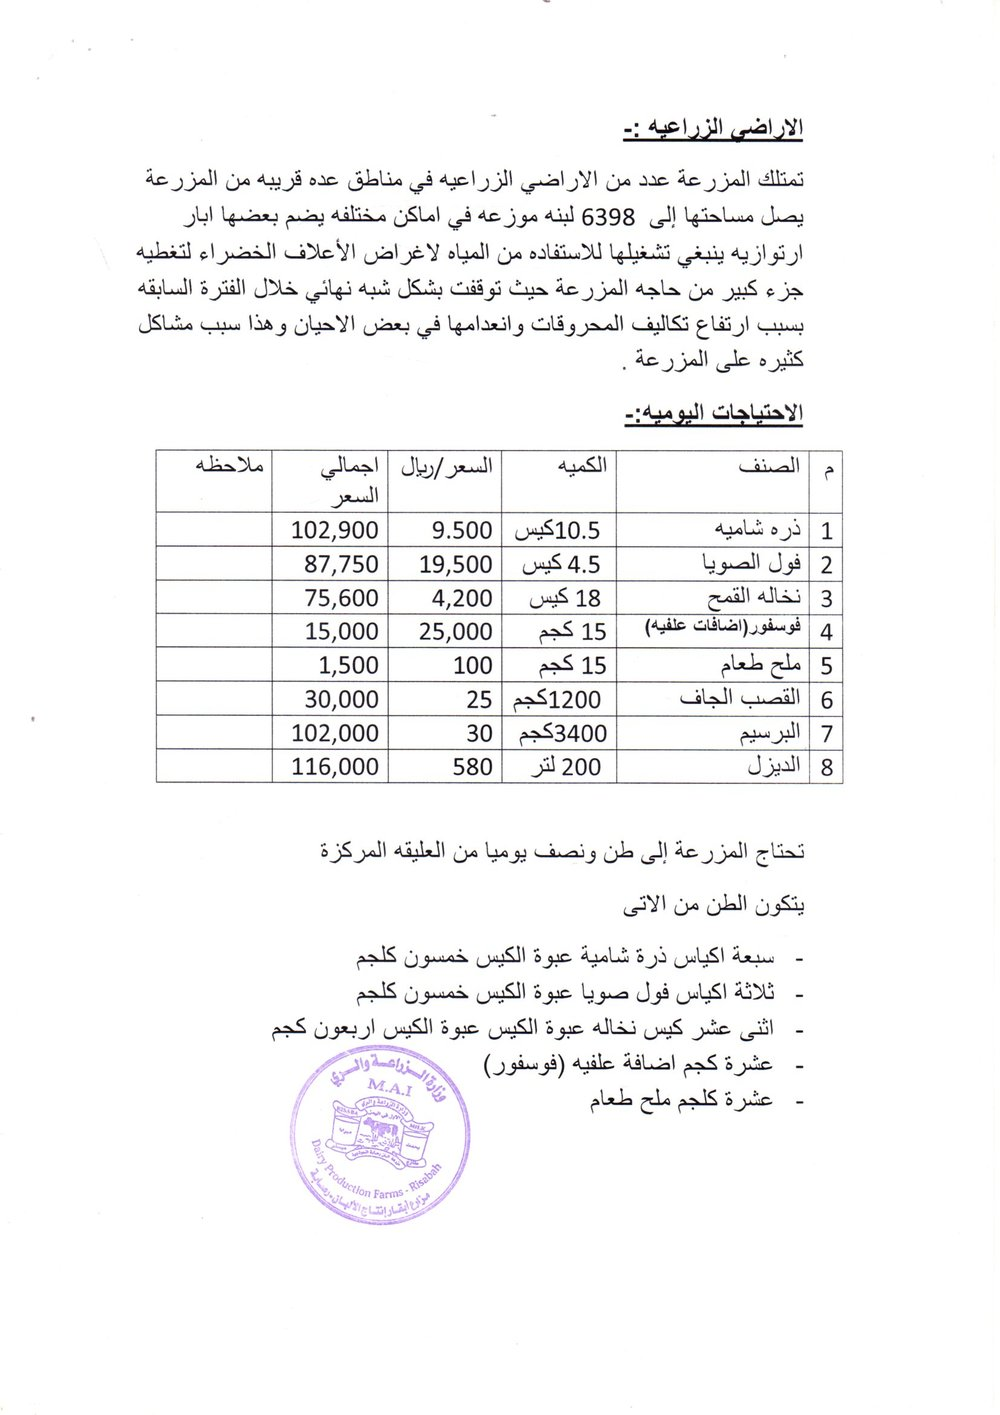 dhamar report page 5 Rosabah farm Dhamar for OWAP AR obtained by Hisham 3 Nov 2018.jpg